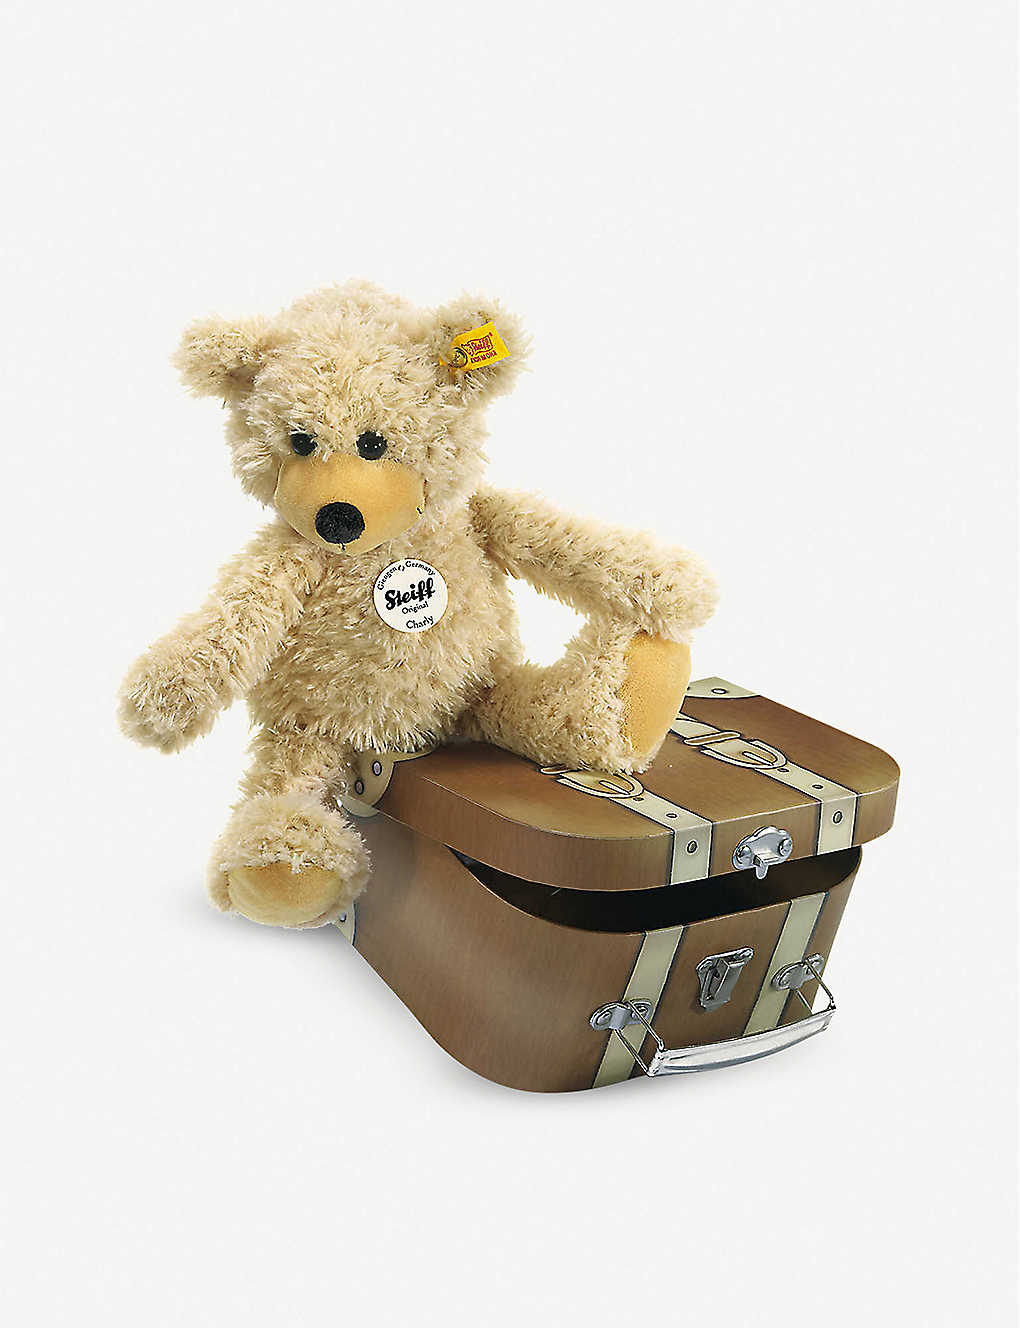 STEIFF: Charly dangling teddy bear in suitcase